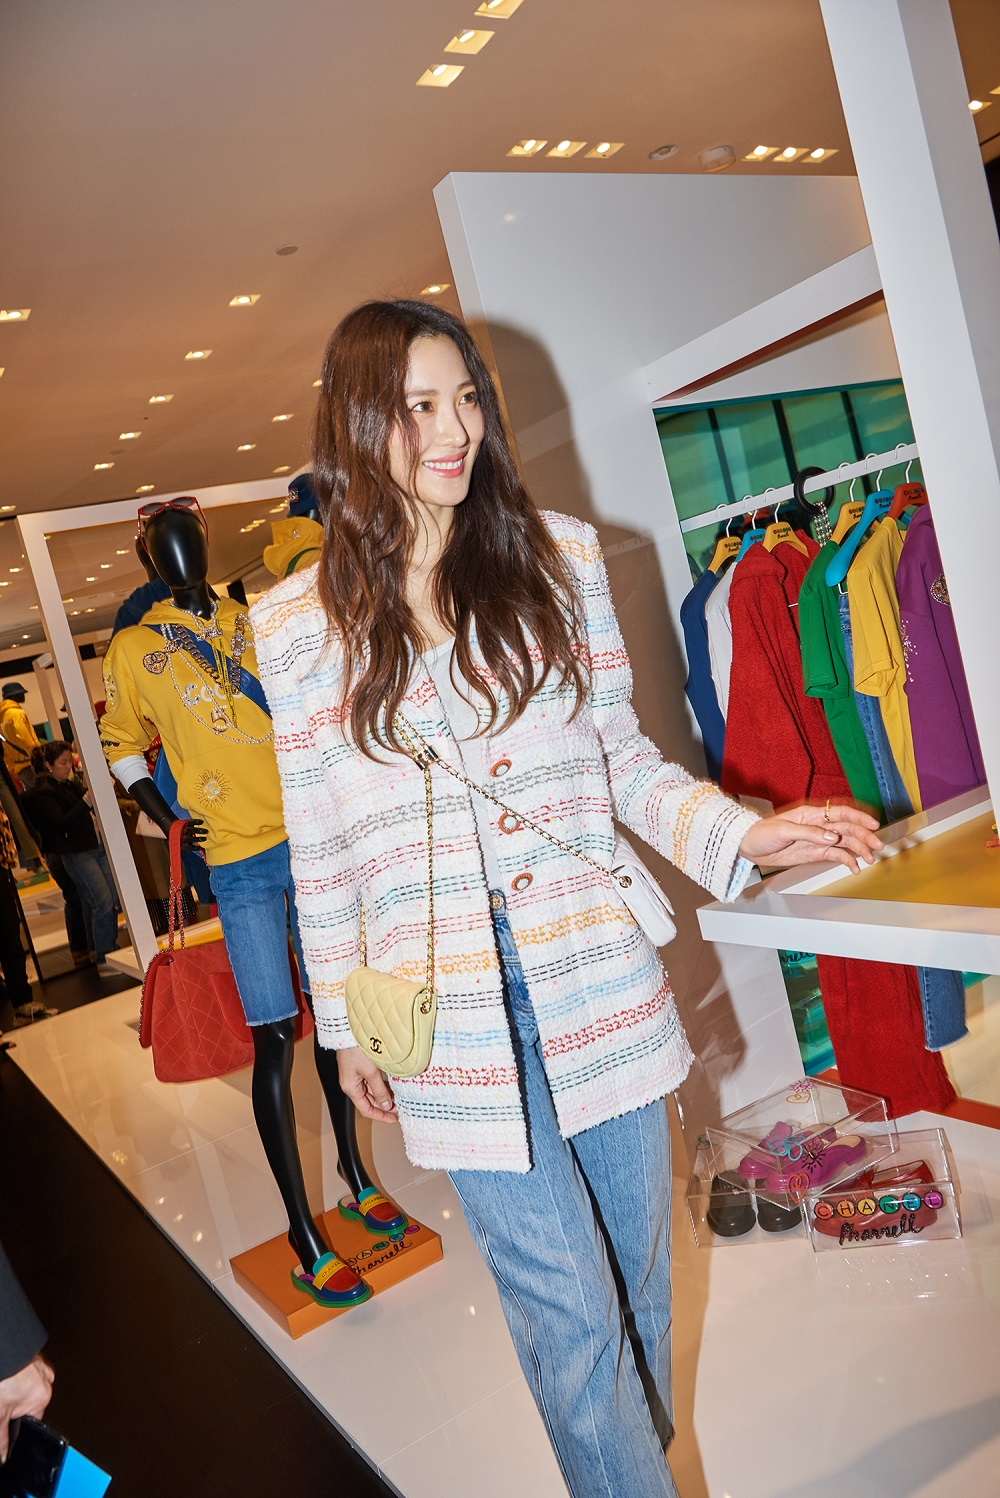 Claudia Kim wore a white striped tweed jacket (look 24), blue jeans (look 56) from the Spring-Summer 2019 Ready-to-Wear collection, CHANEL bag and accessories. She also wore